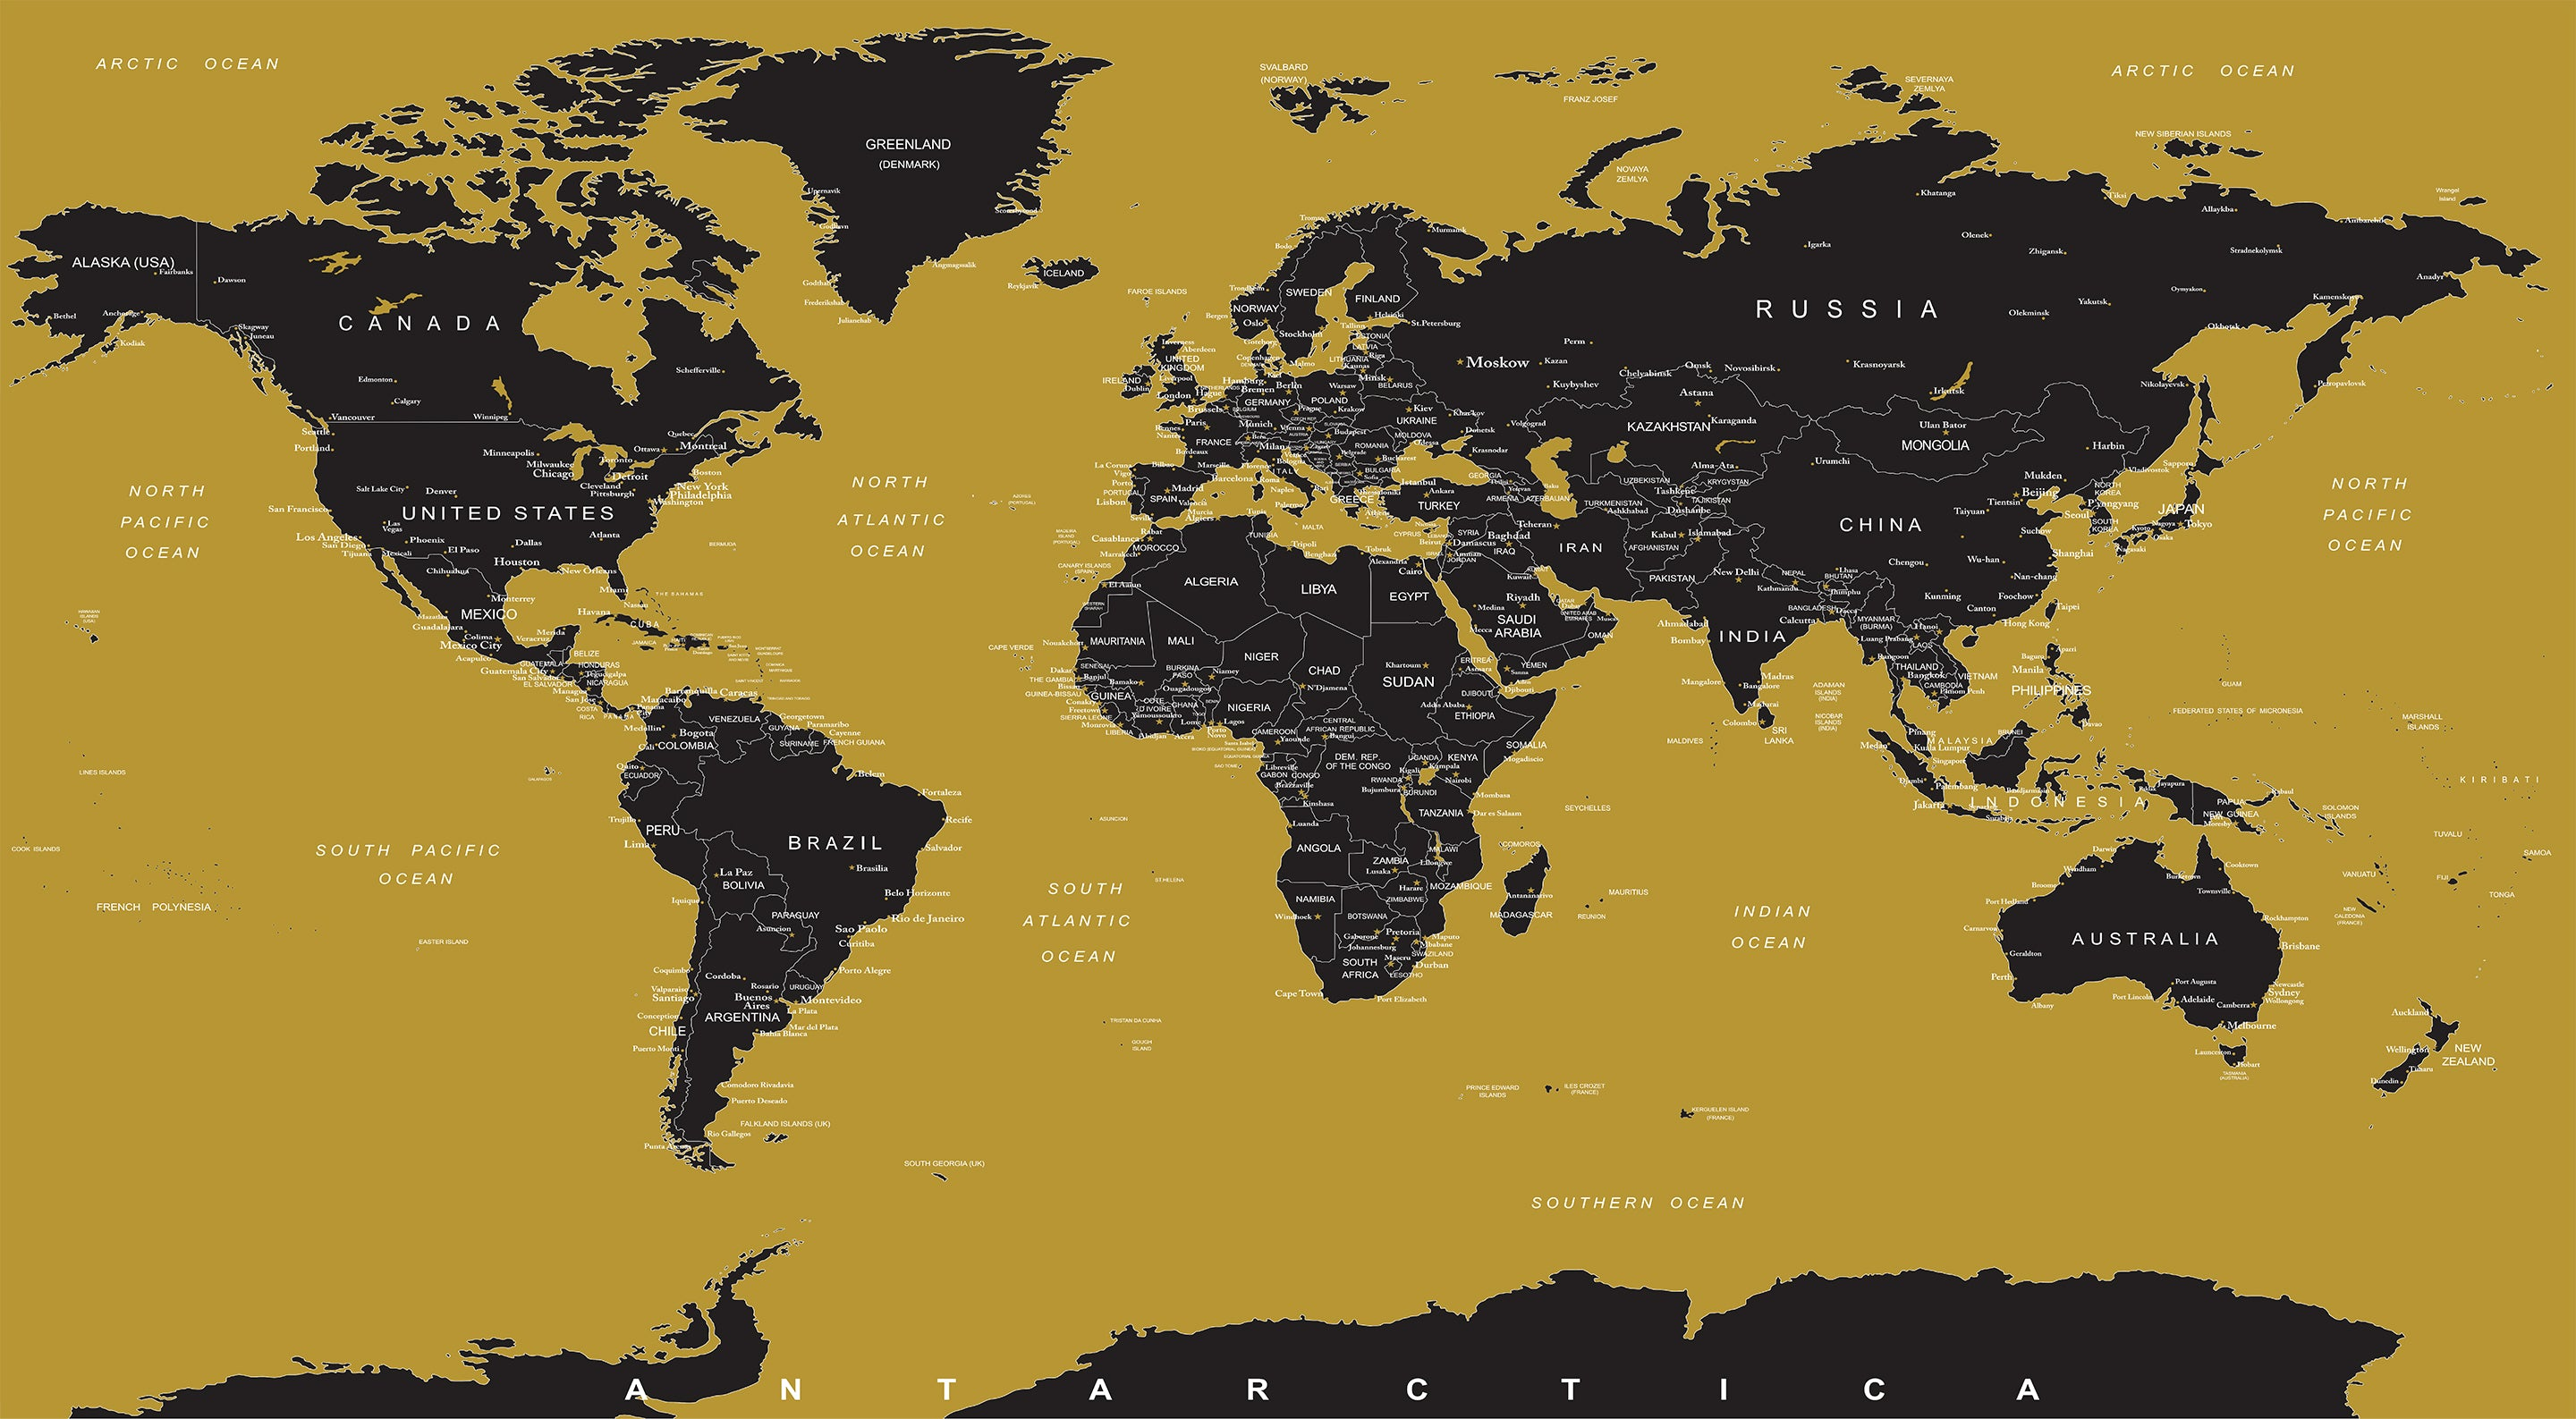 GOLD World Map Wall Mural. #6135 on usa debt map, usa fire map, usa coast map, usa halite map, usa red map, usa mountains map, usa area code list, usa statehood map, usa shadow map, usa grey map, usa neon map, usa land map, usa grid map, usa glaciers map, usa light map, usa blank map united states, usa map with cities and states detailed, usa copper map, usa white map, usa night map,